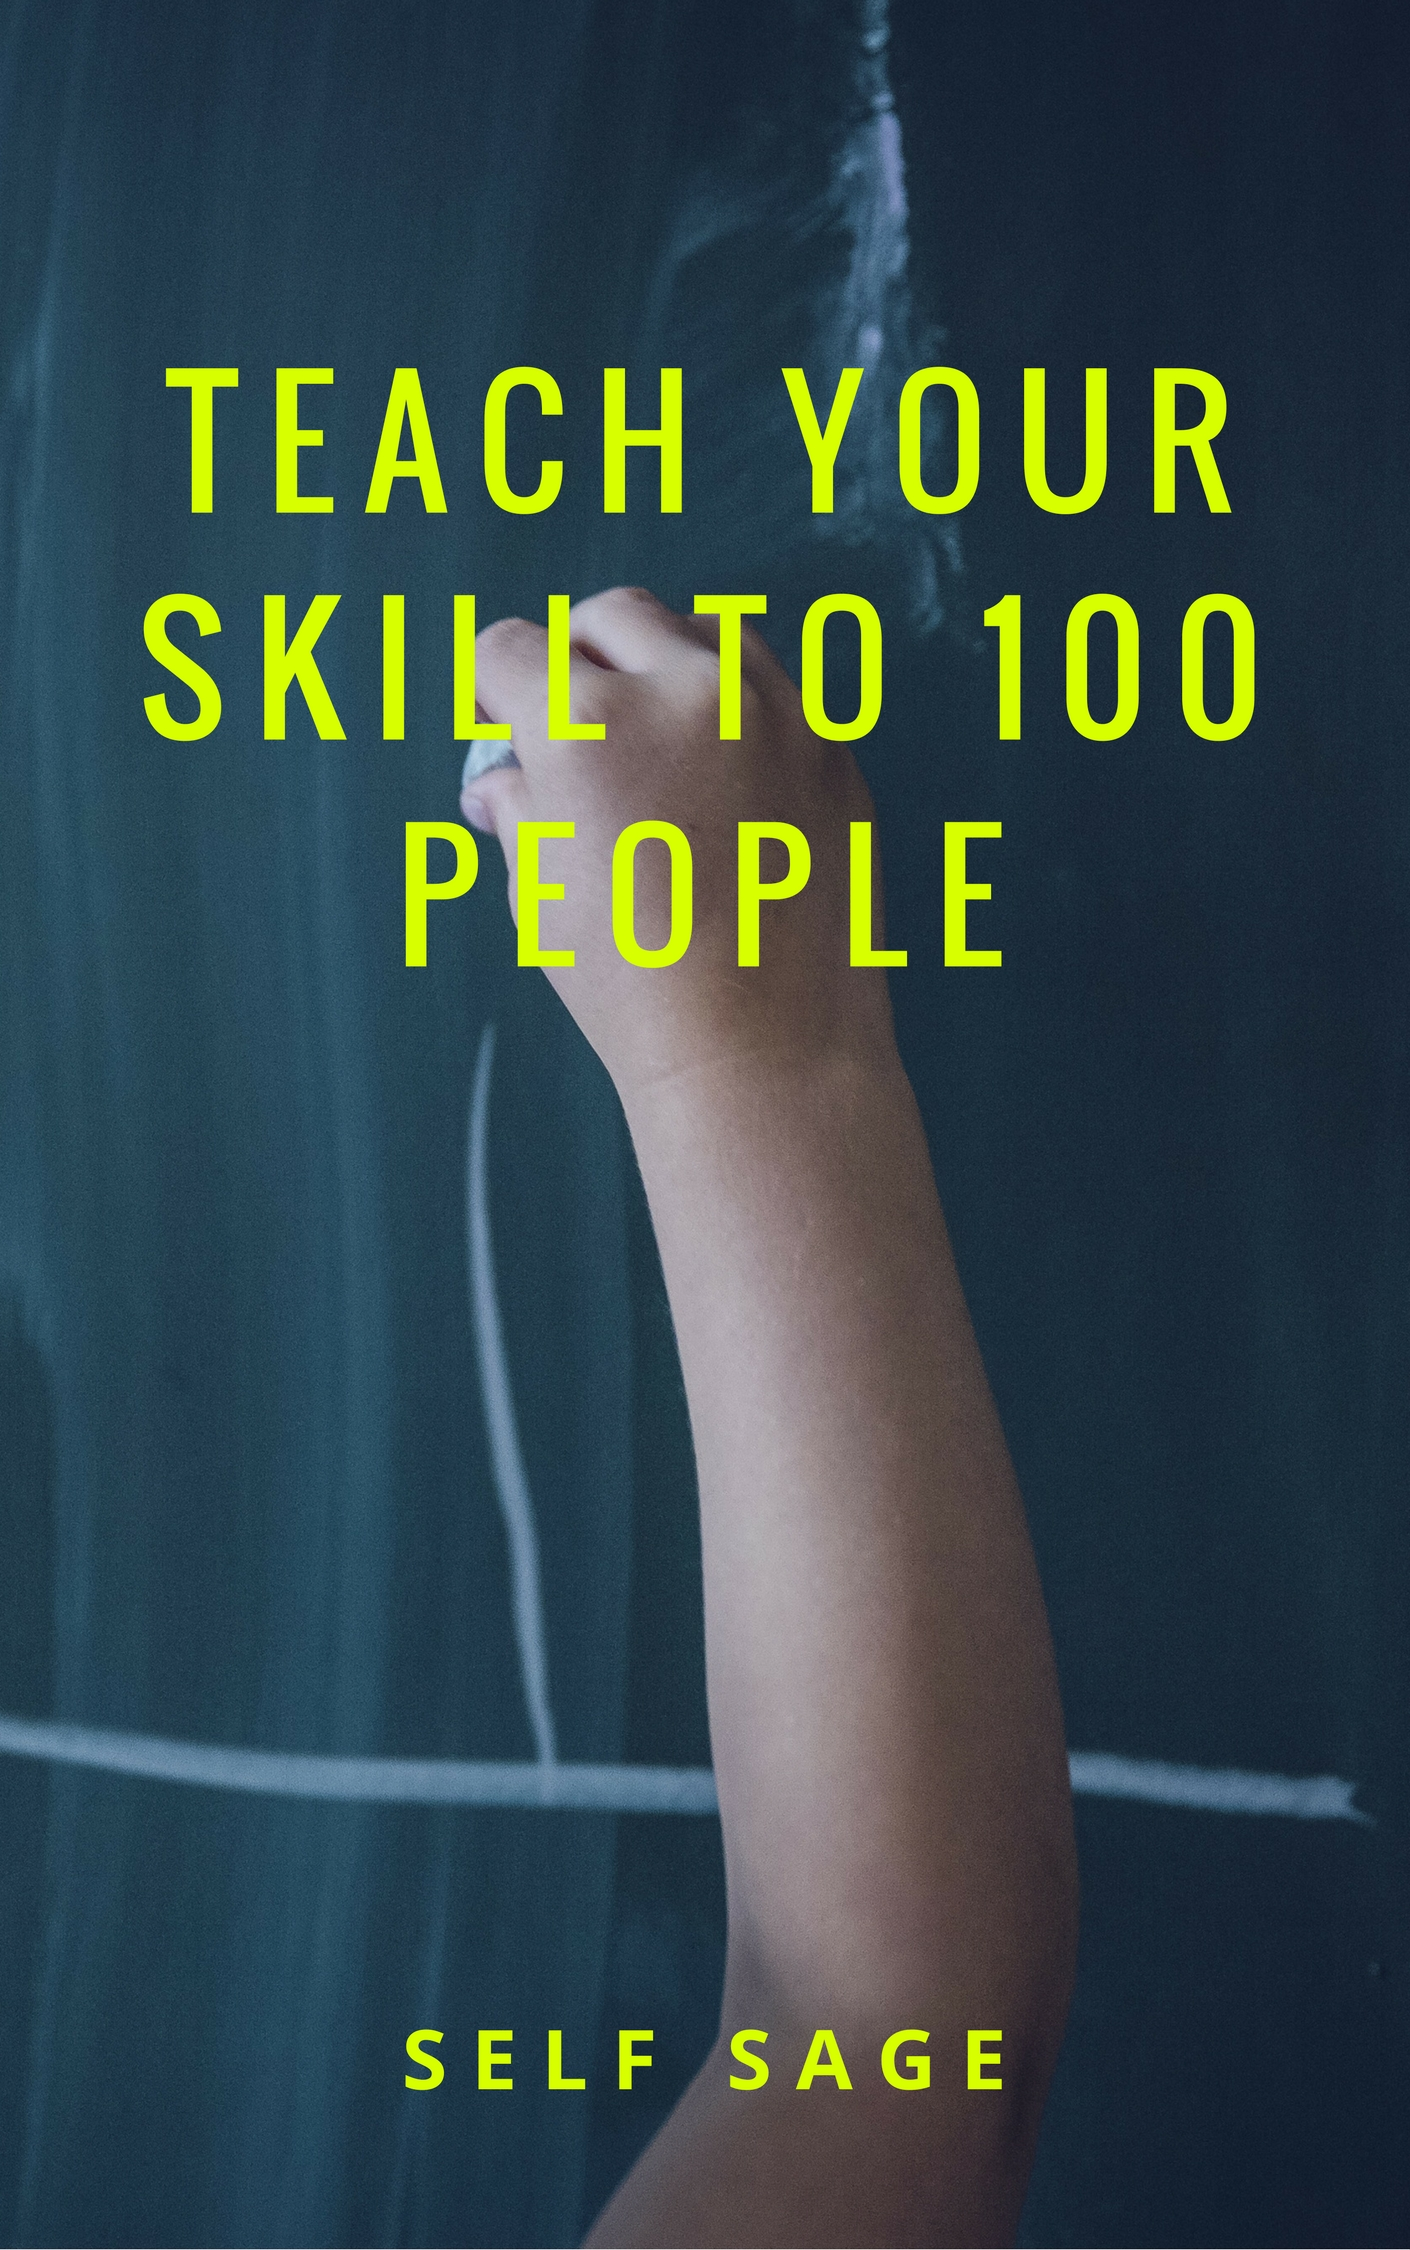 Teach your skill to 100 people - passive income scheme